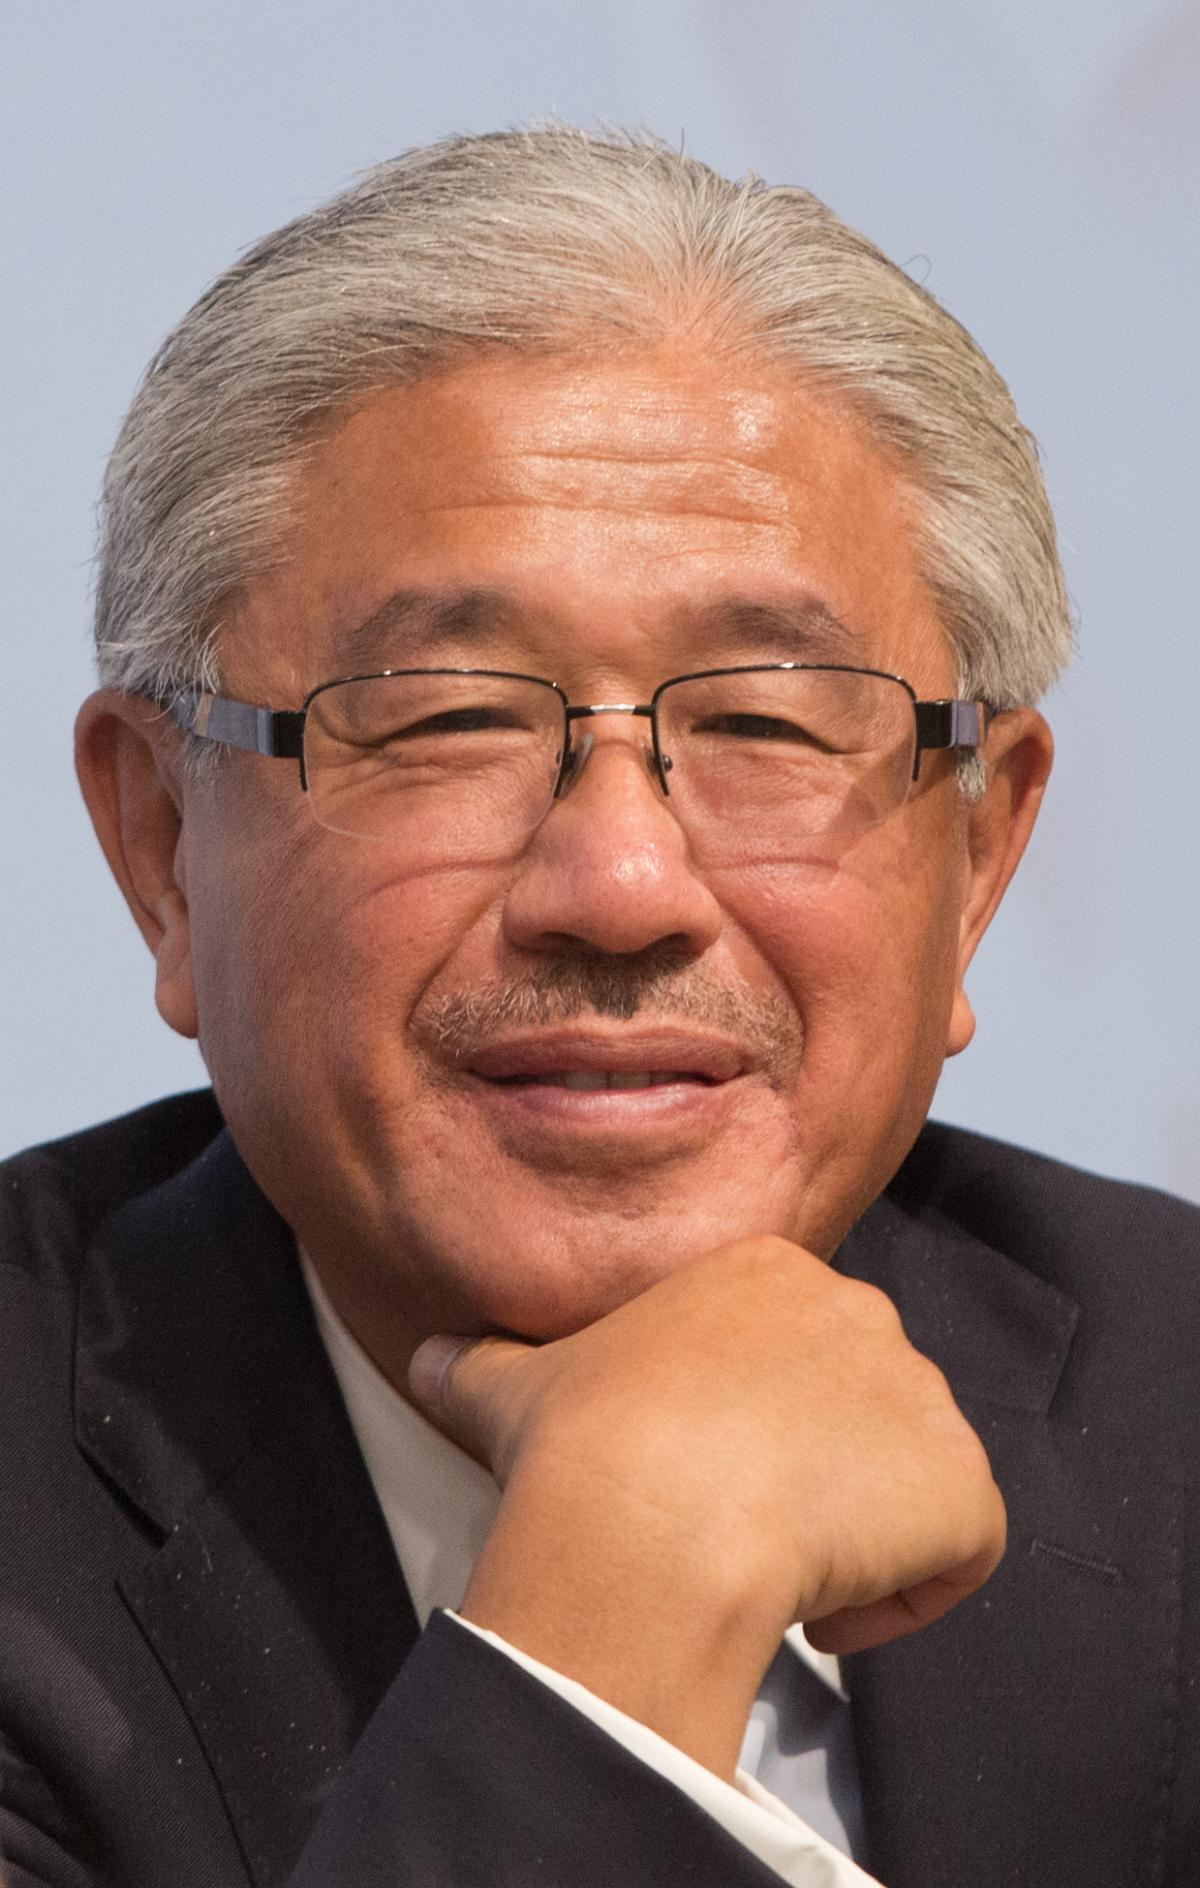 Dr. Victor Dzau, president of the National Academy of Medicine, attends the 2015 World Health Summit in Berlin.